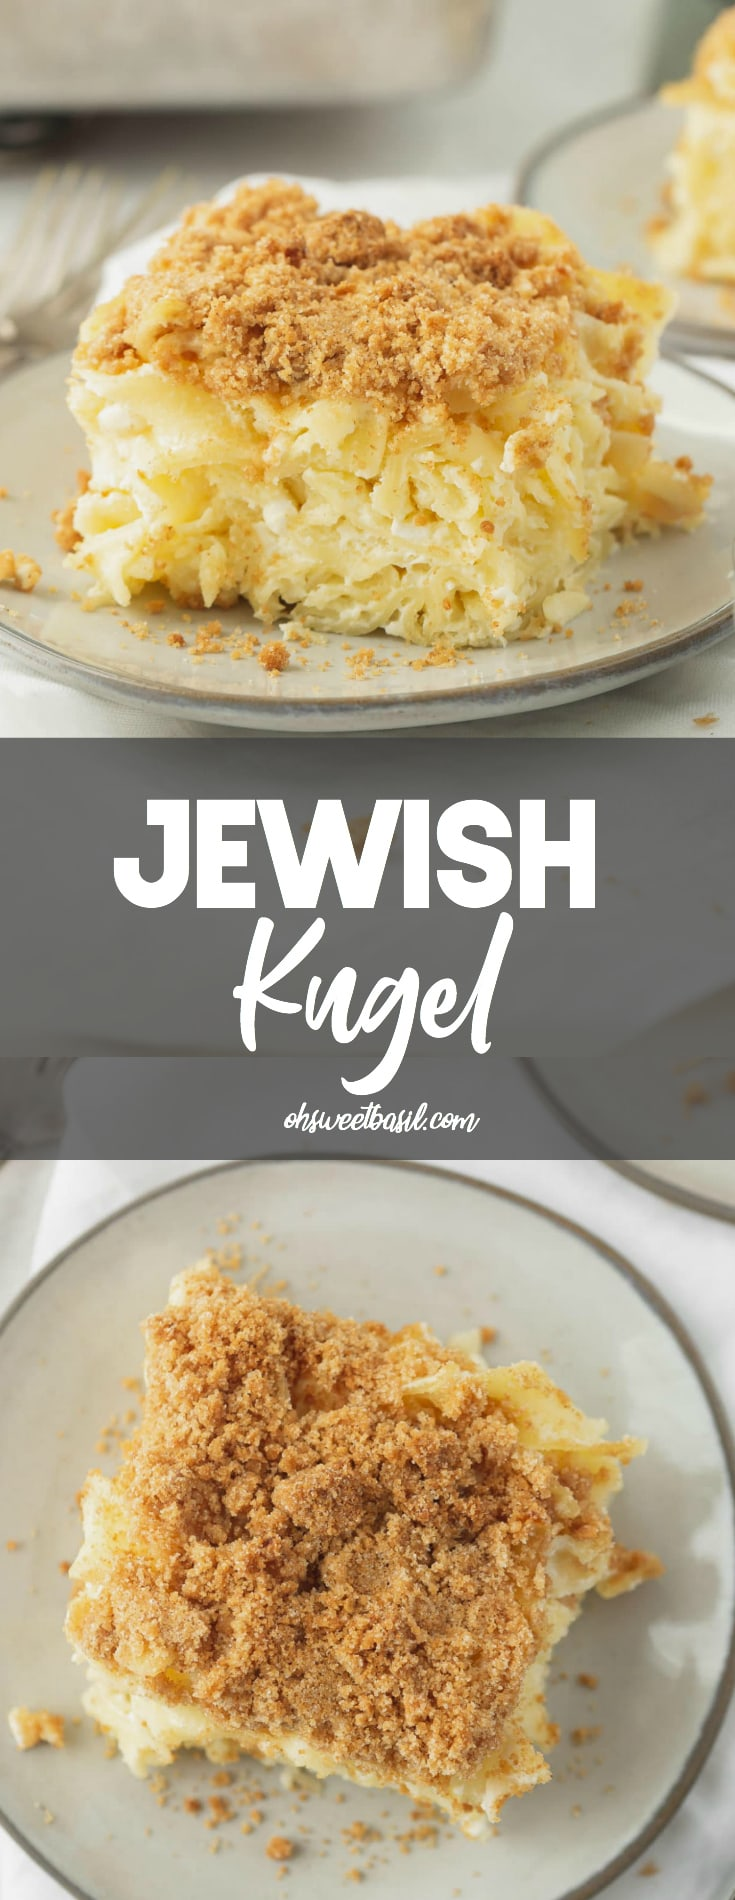 A serving of Jewish Kugel on a small white plate. There are noodles in a creamy sauce and a graham cracker crumb topping. A casserole pan and another serving of kugel are in the background.